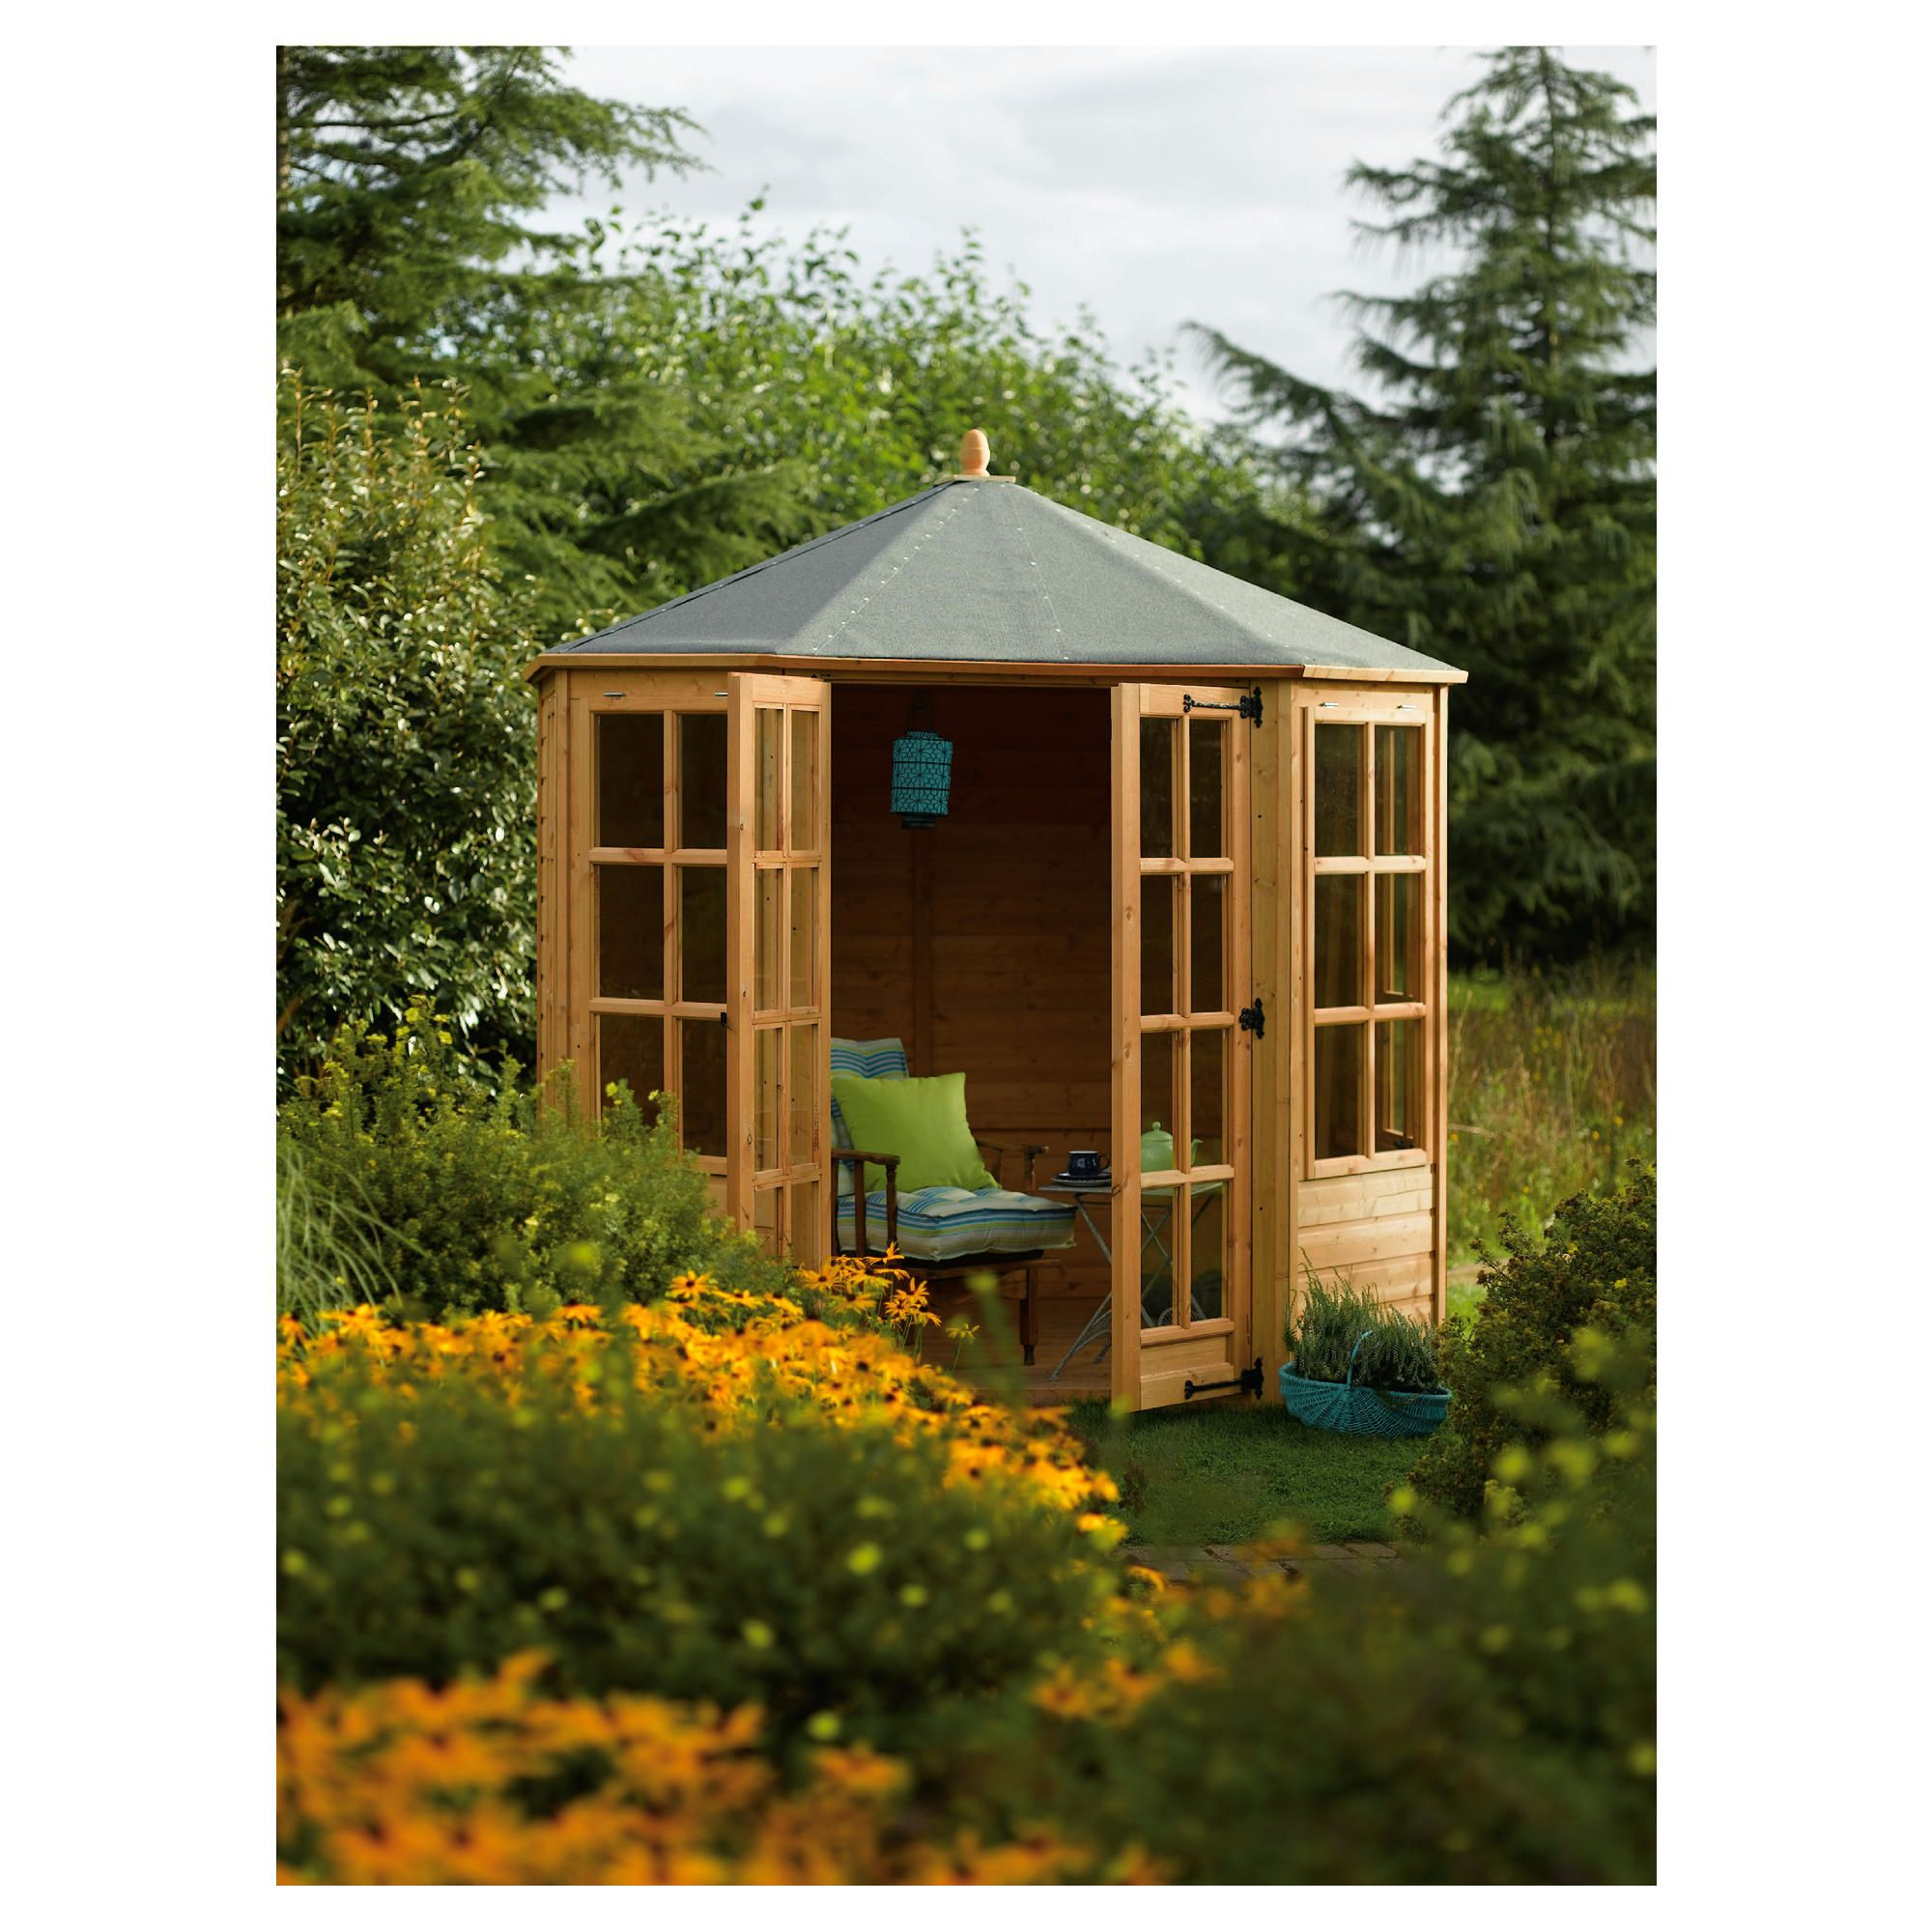 Rowlinson Ryton Octagonal Summerhouse 8x8 at Tesco Direct